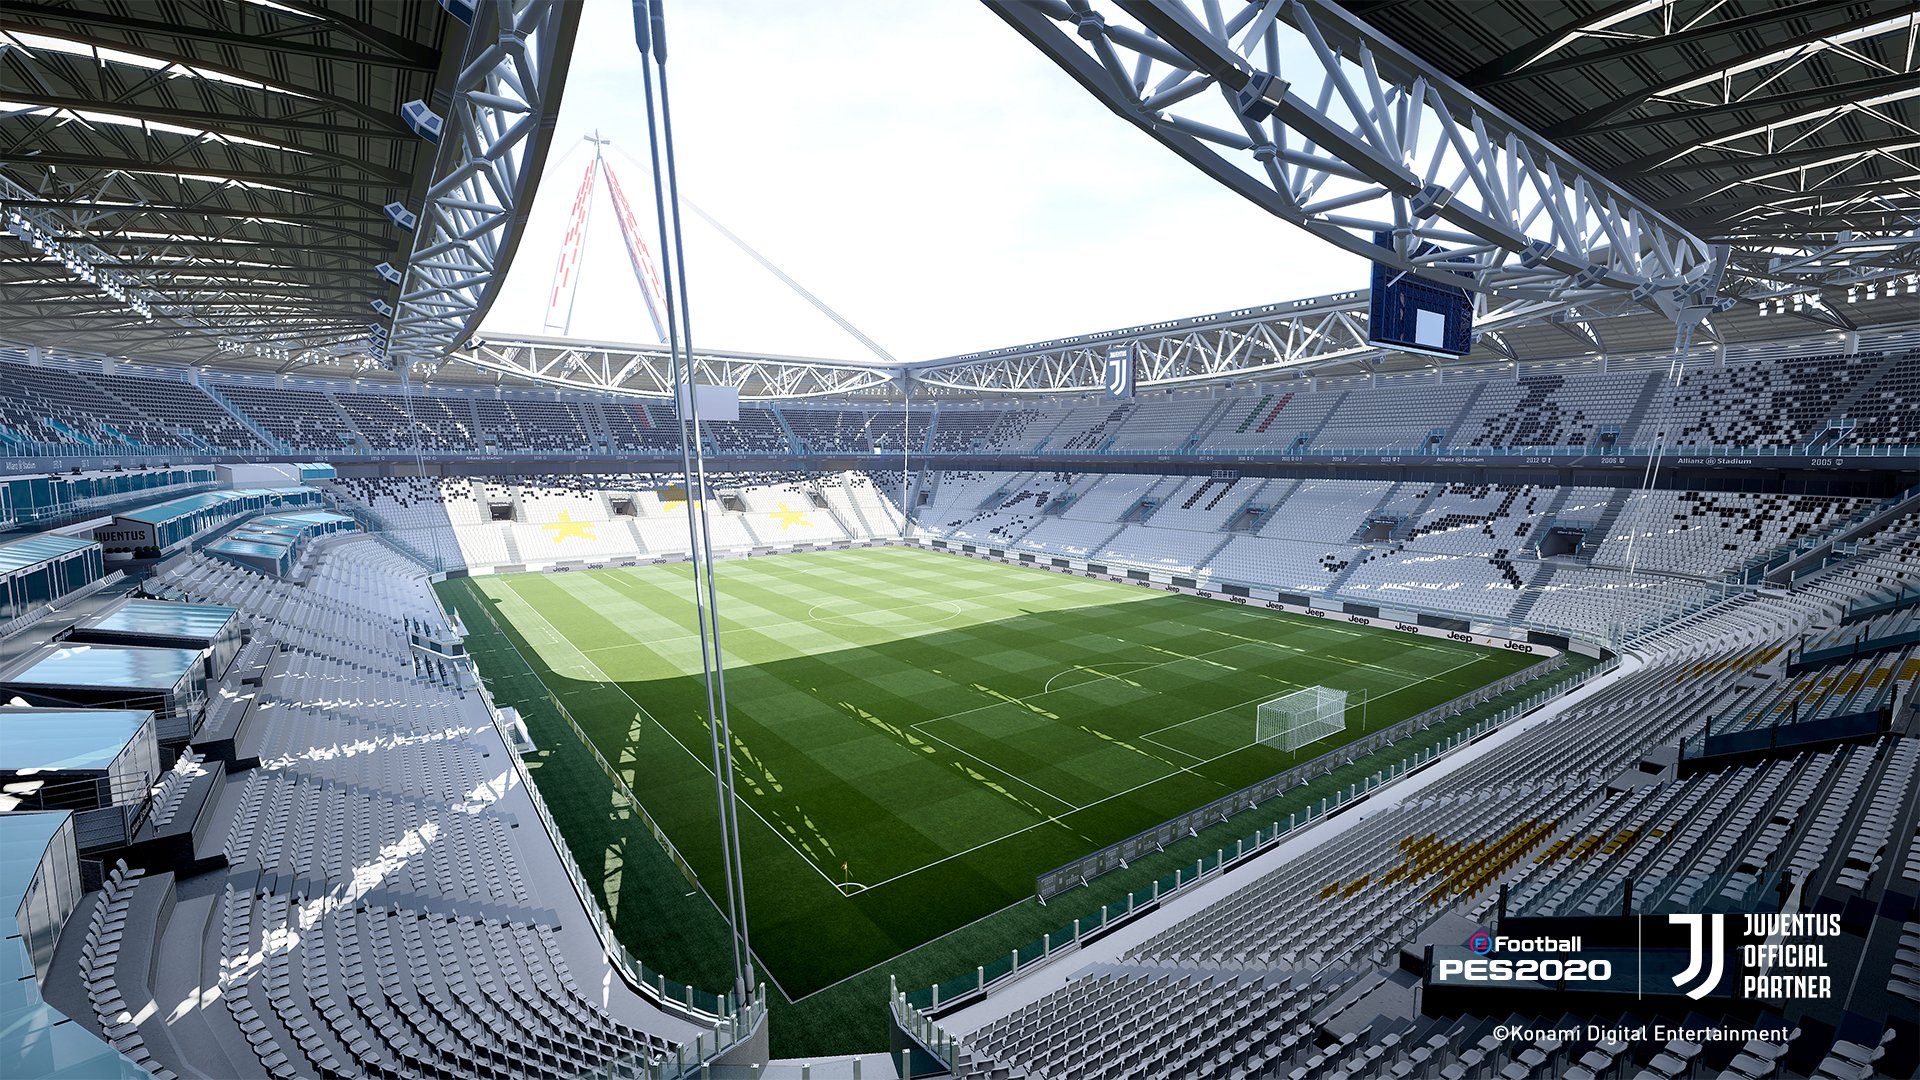 Juventus becomes 'Piemonte Calcio' for 'FIFA 20' after EA loses rights